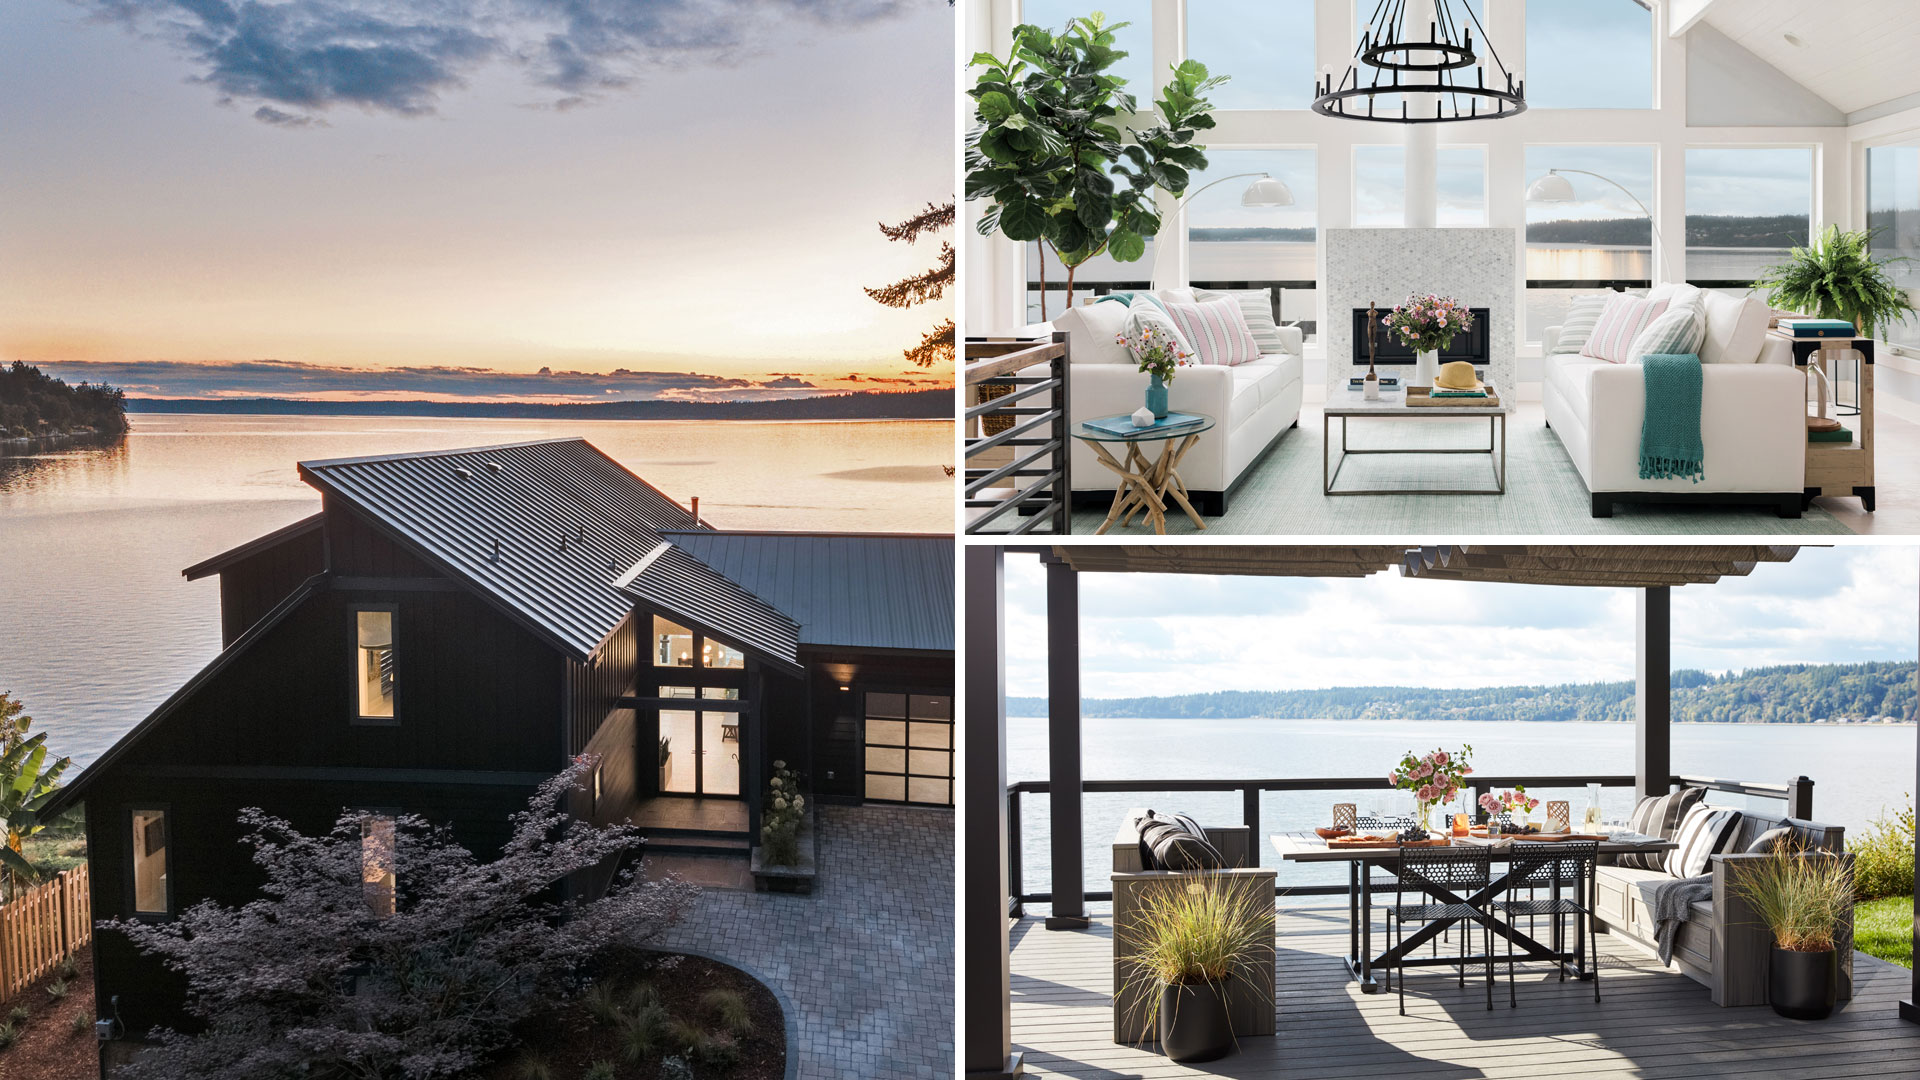 kgwcom Gig Harbor waterfront home is